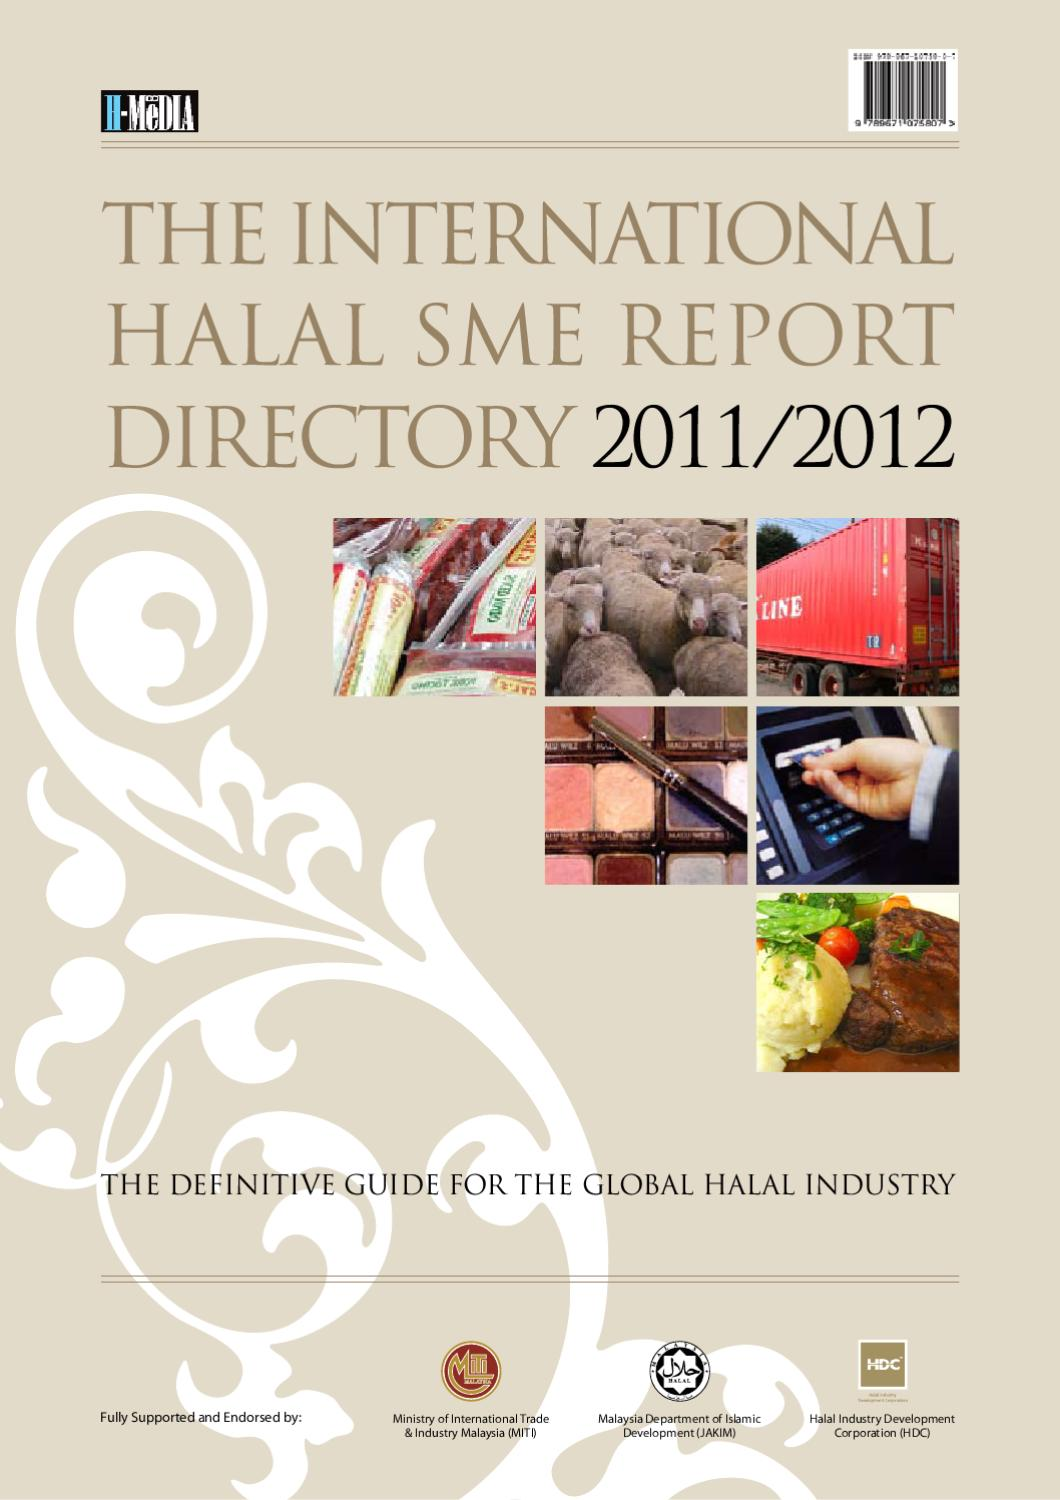 The International Halal SME Report Directory by Kamarul